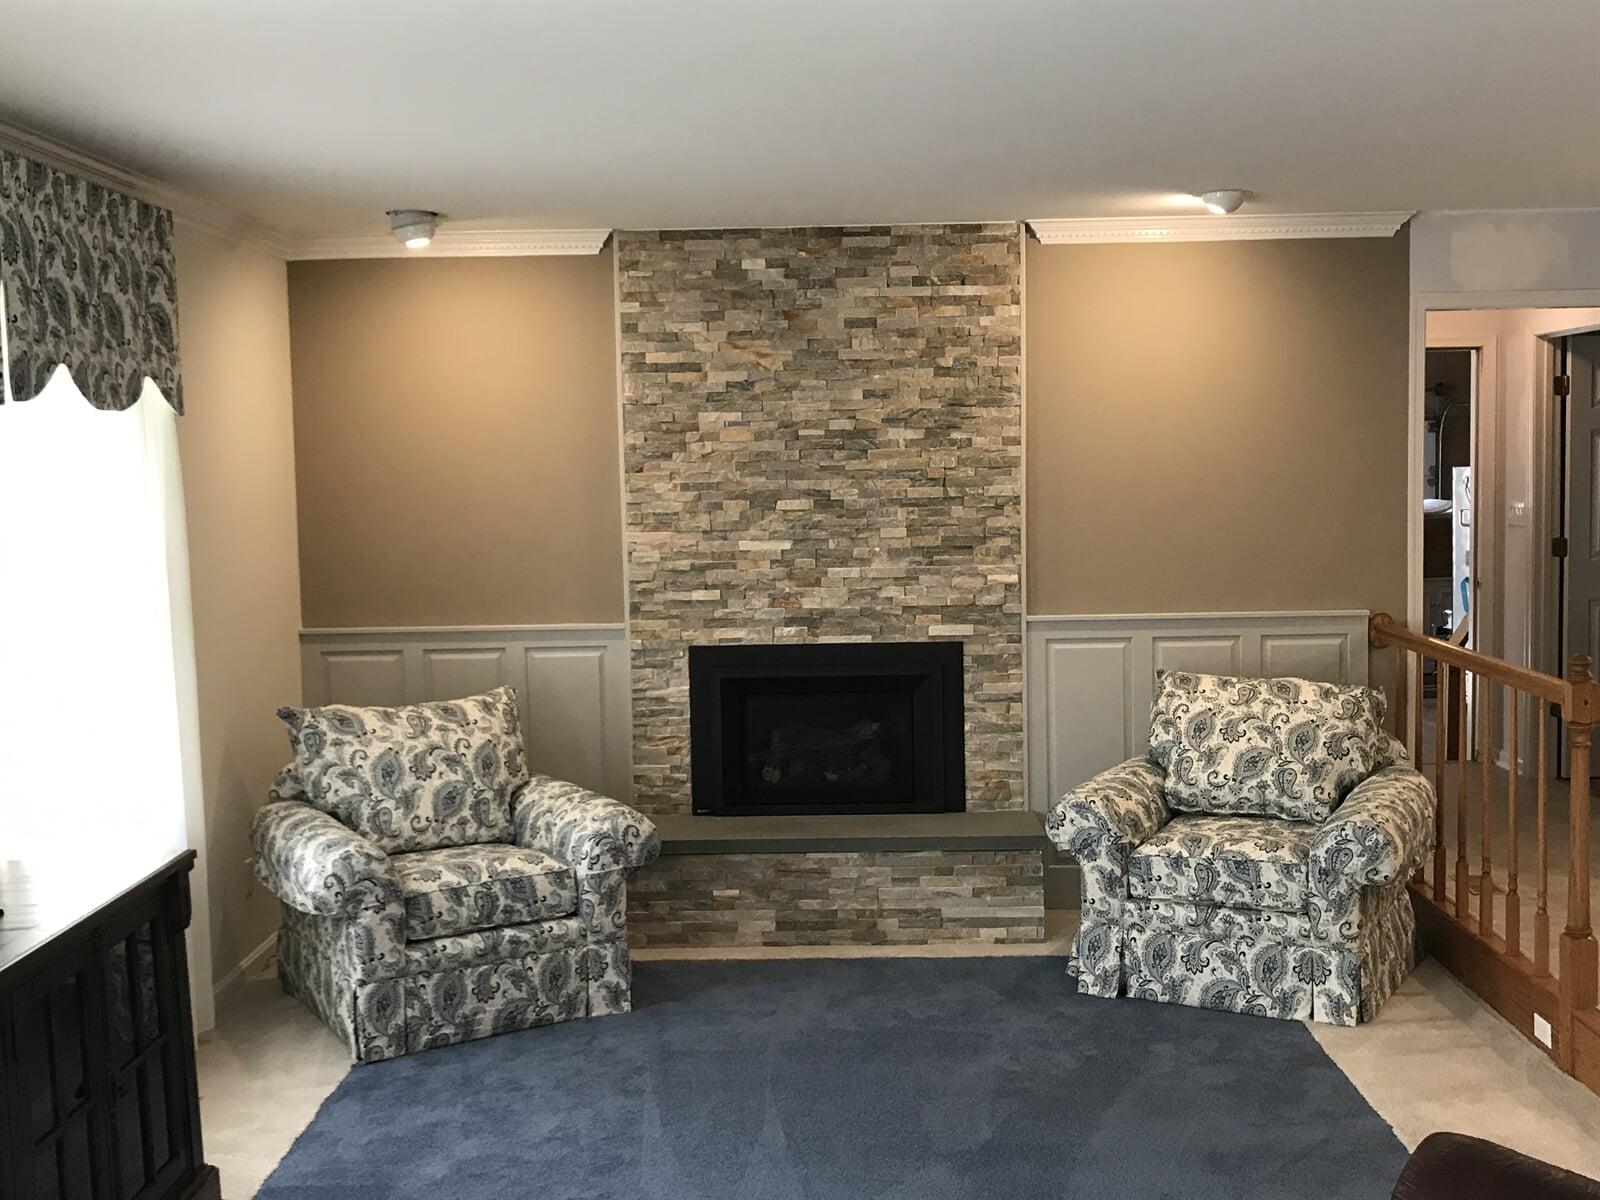 Drystack Fireplace & Re-upholstery Chairs